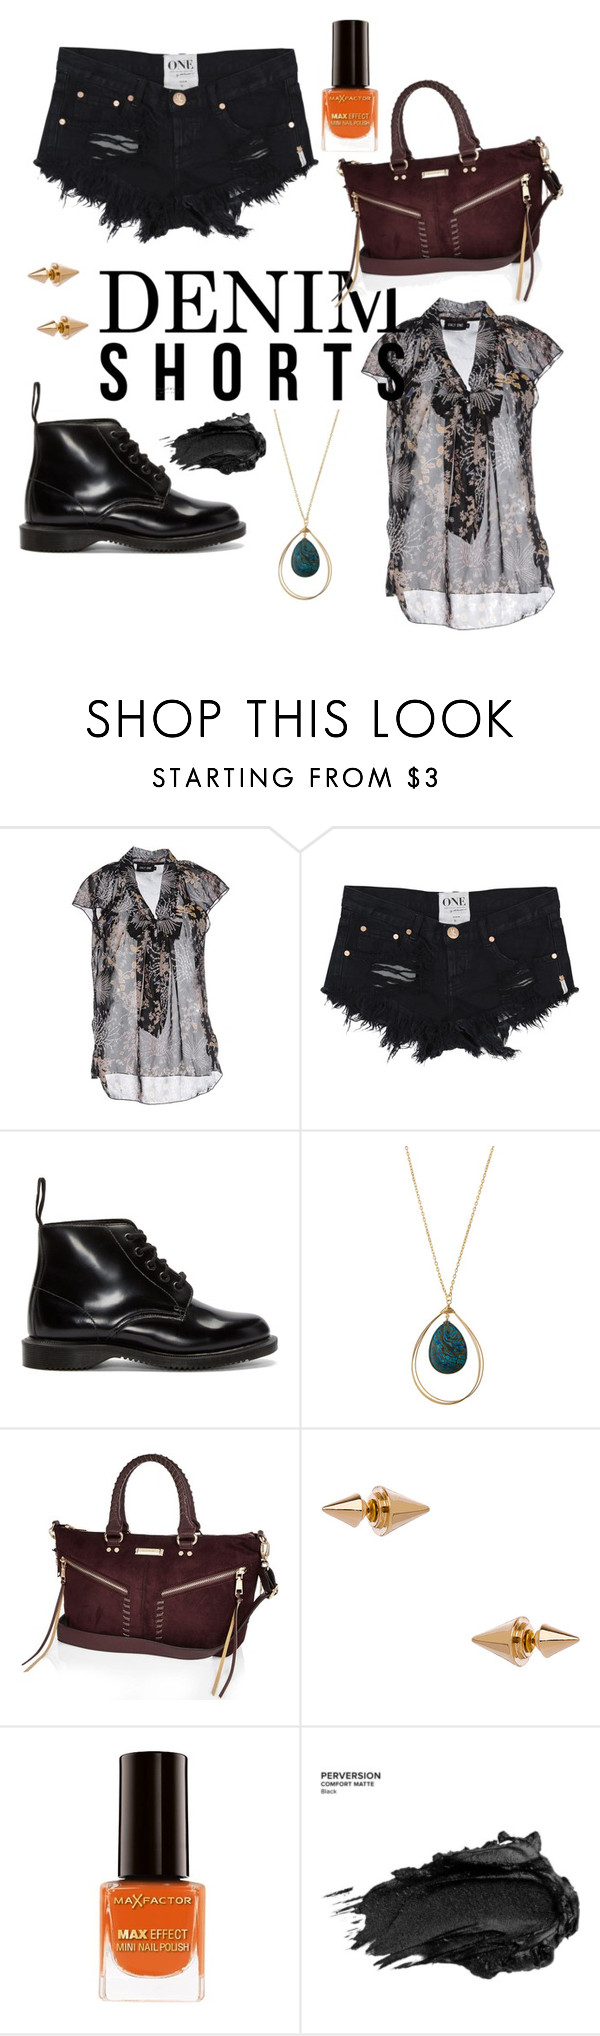 """Denim shorts"" by jessicamlrw ❤ liked on Polyvore featuring ONLY, Dr. Martens, Panacea, River Island, Blu Bijoux, Max Factor, Urban Decay, jeanshorts, denimshorts and cutoffs"